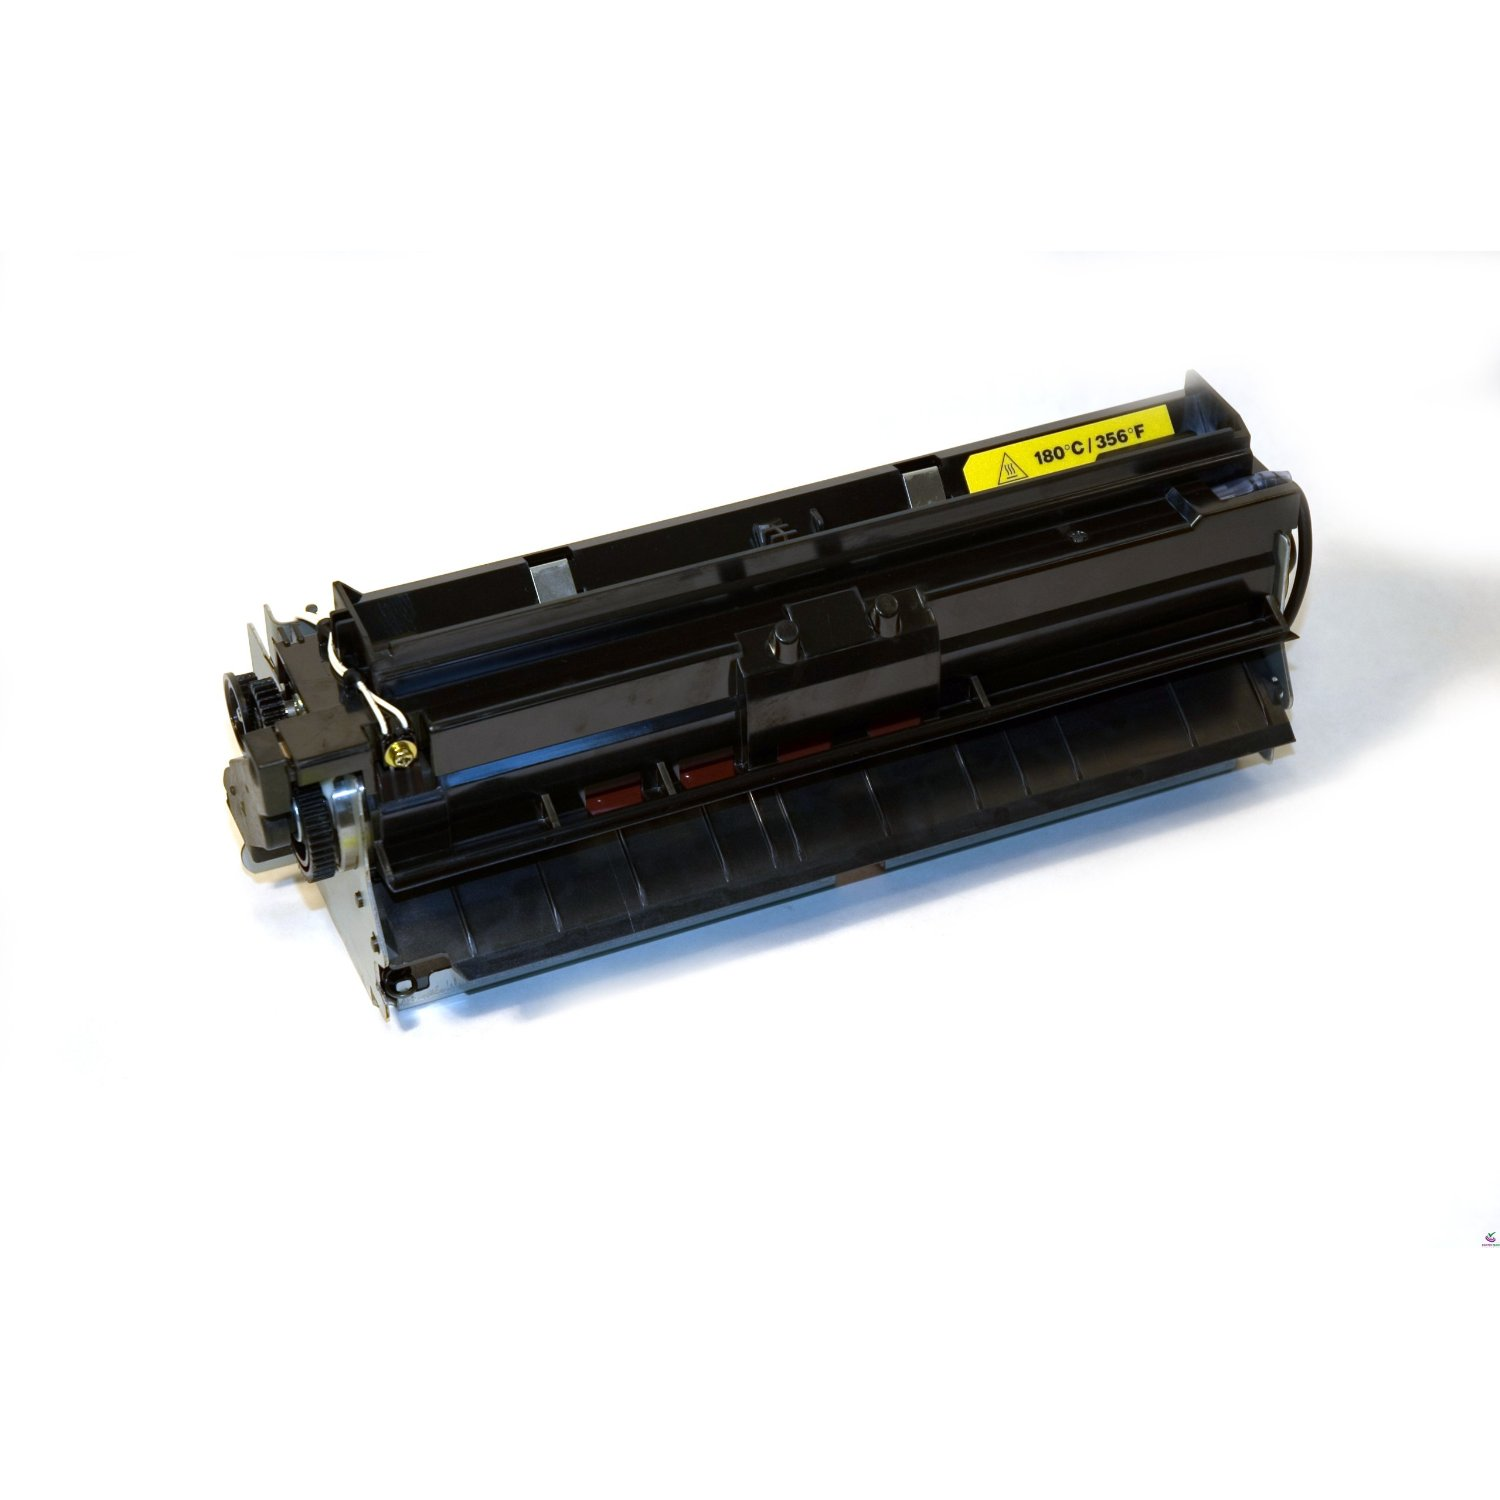 Lexmark T630/T632: Lexmark 12A7465 Remanufactured Black Toner Cartridge for T630/632/634 and X630/632 Series